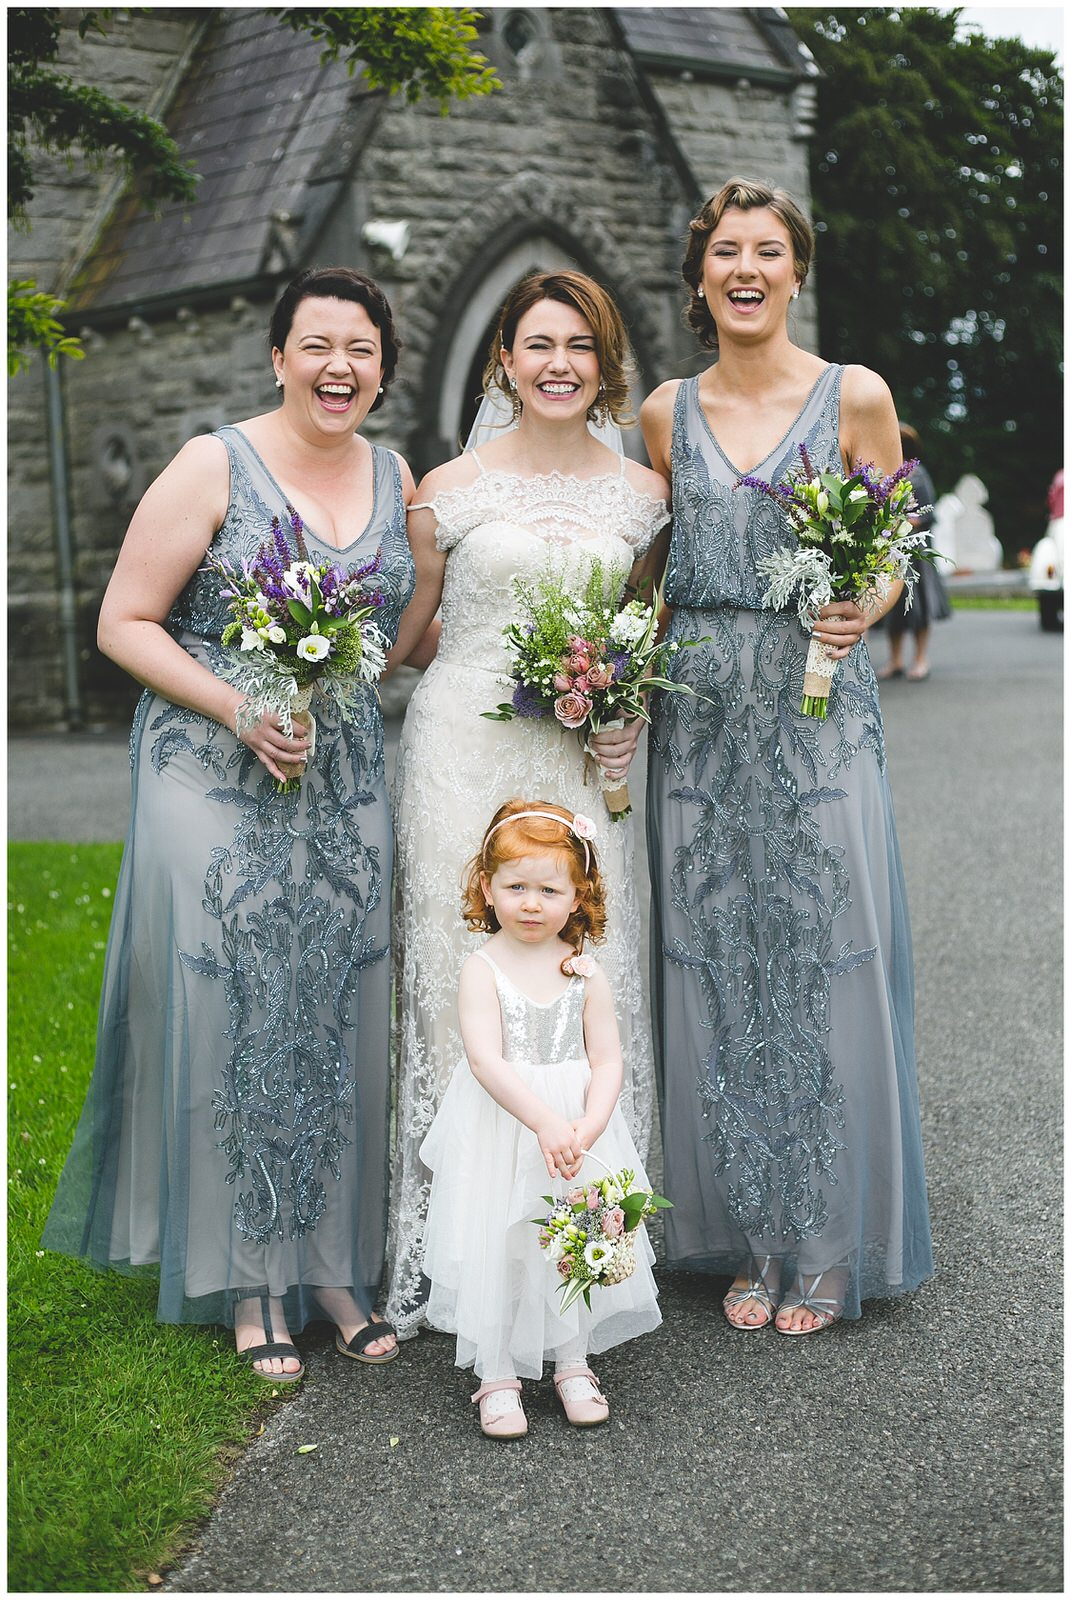 Gorgeous portrait of a bride, bridesmaids & flower girl